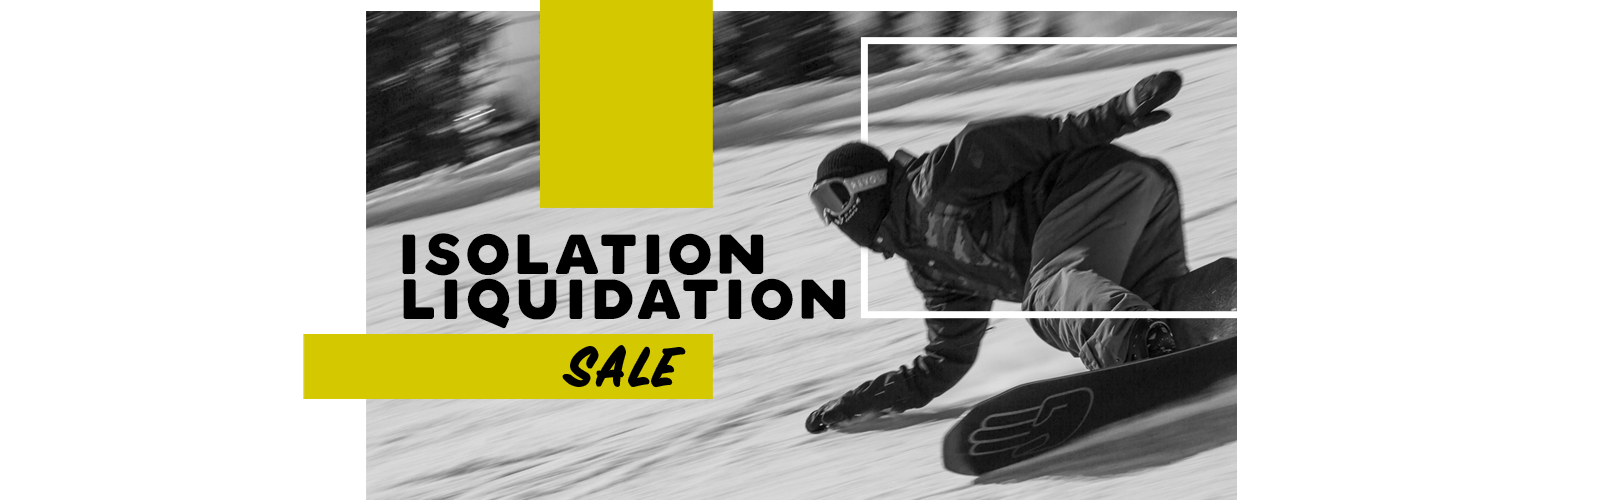 Snowboard gear sale